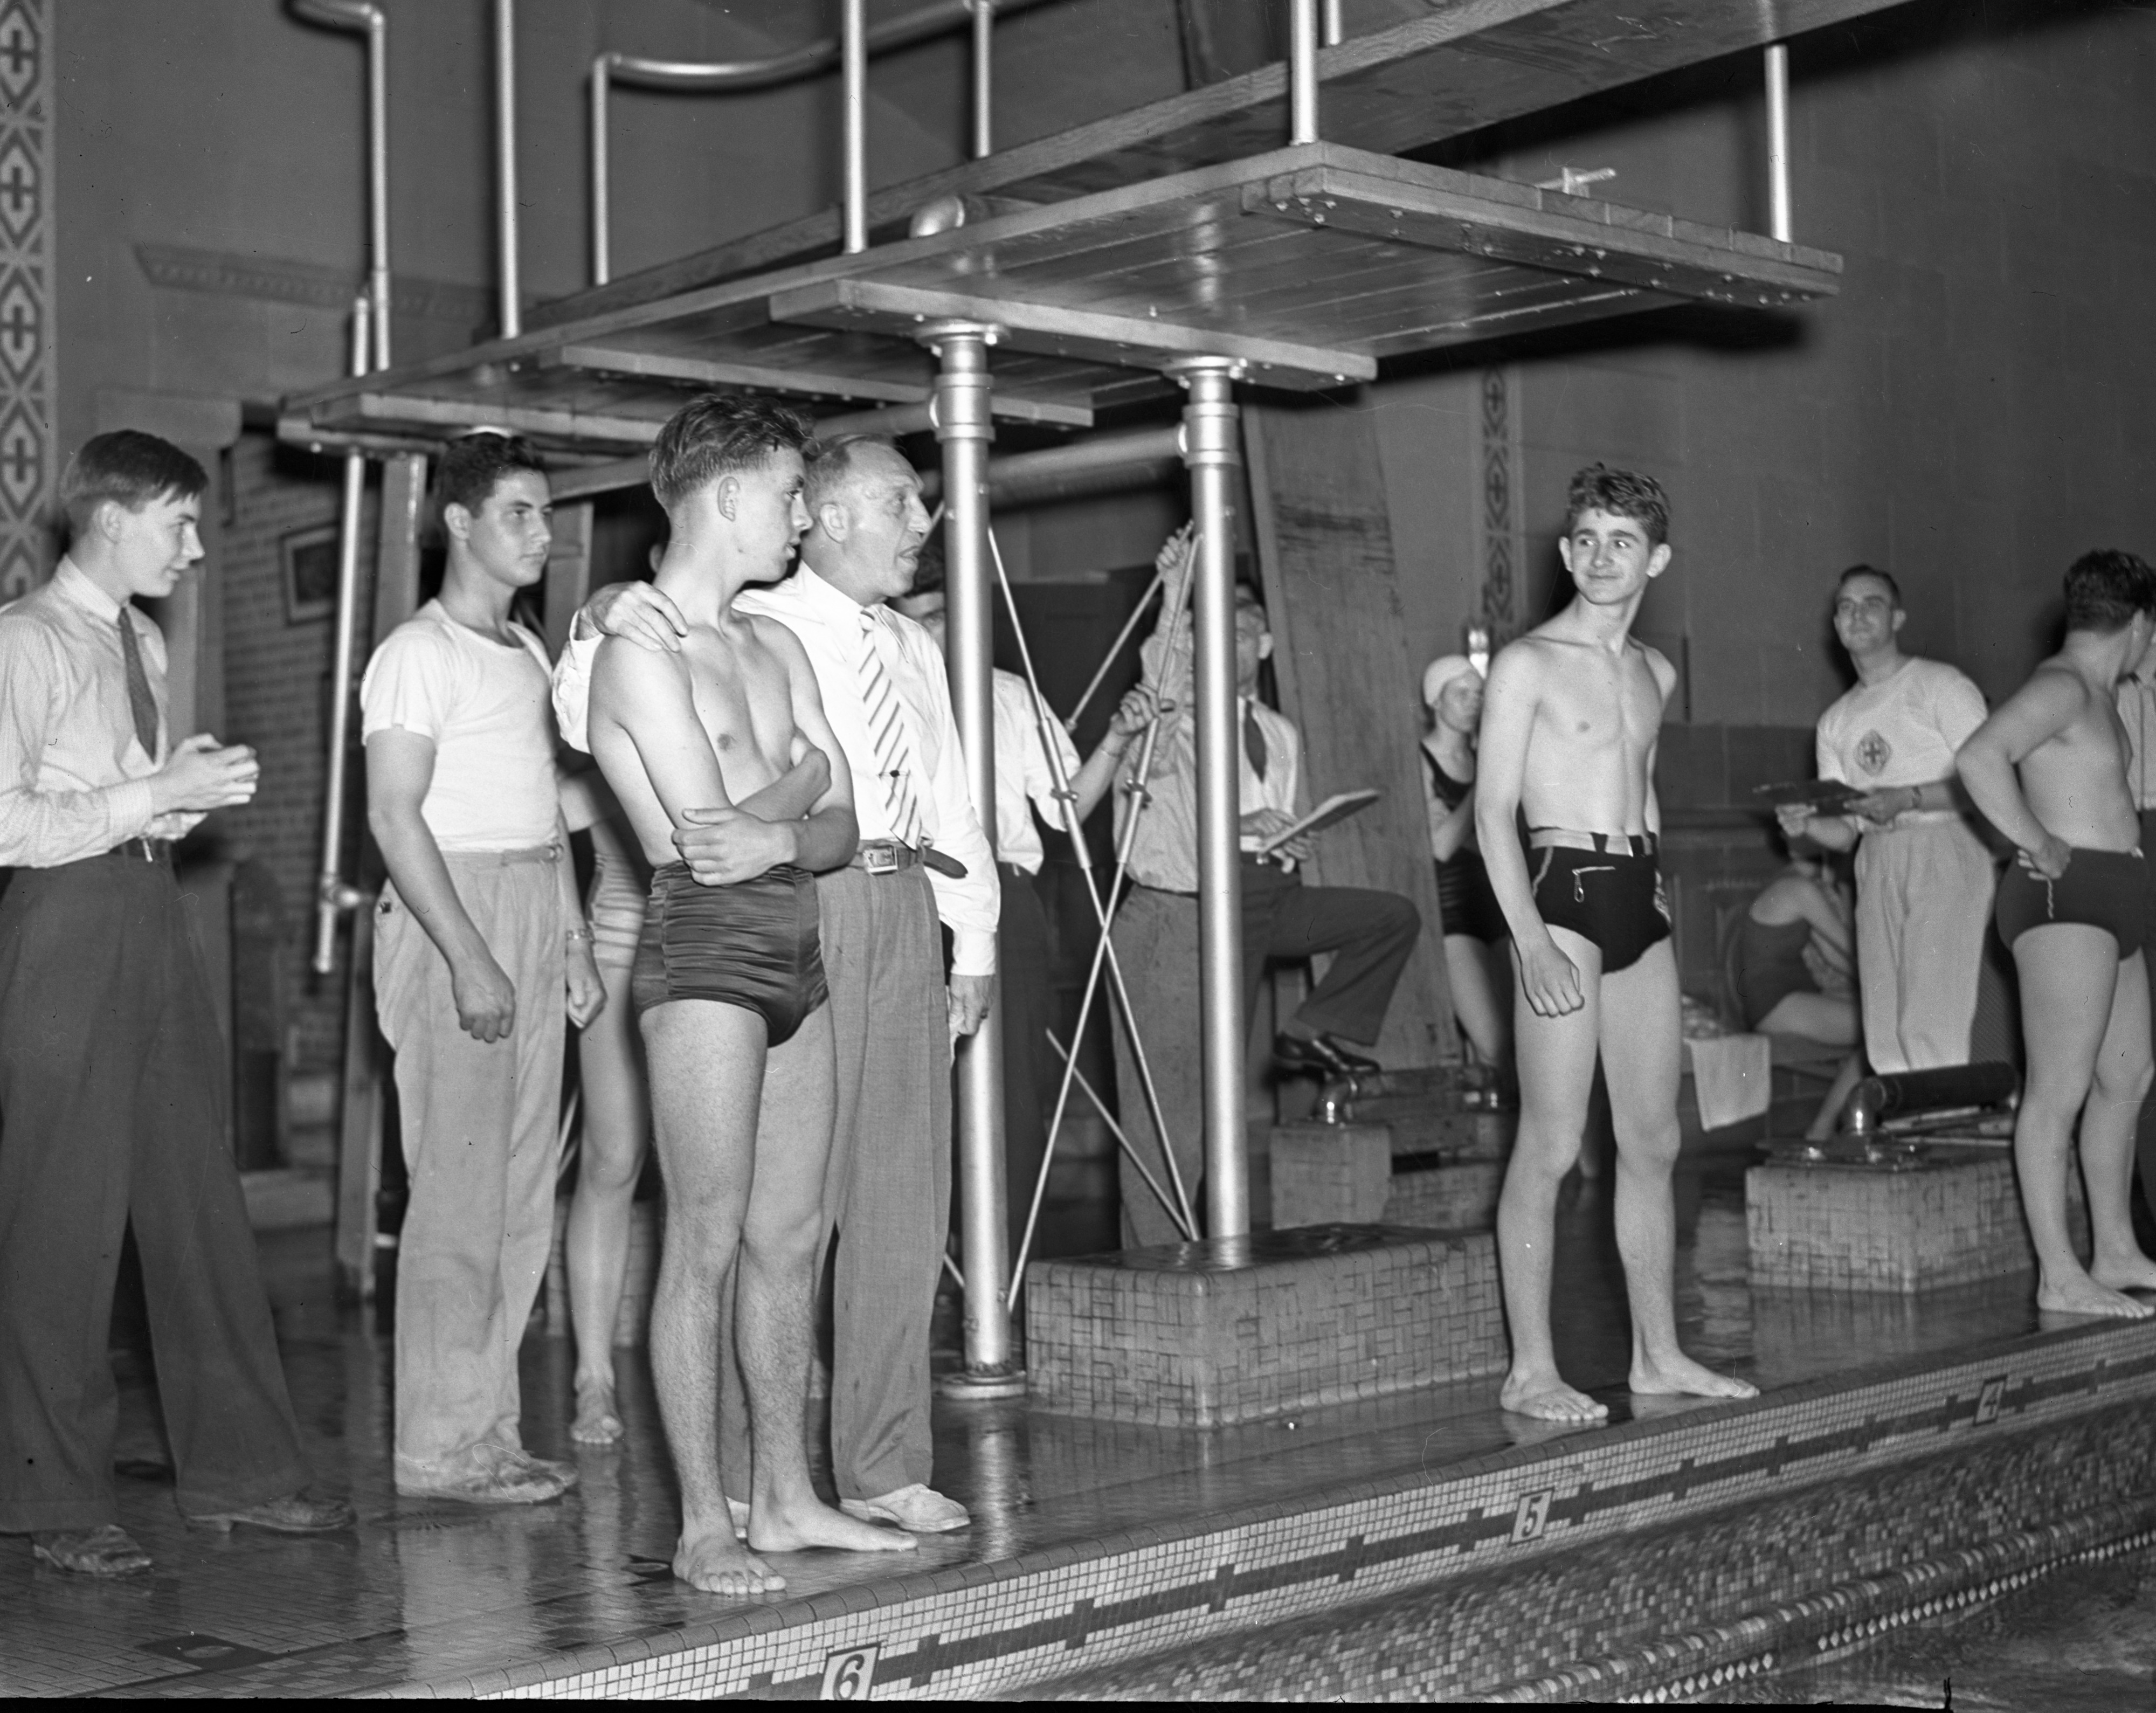 All City Swim Meet at the Intramural Pool, May 1938 image